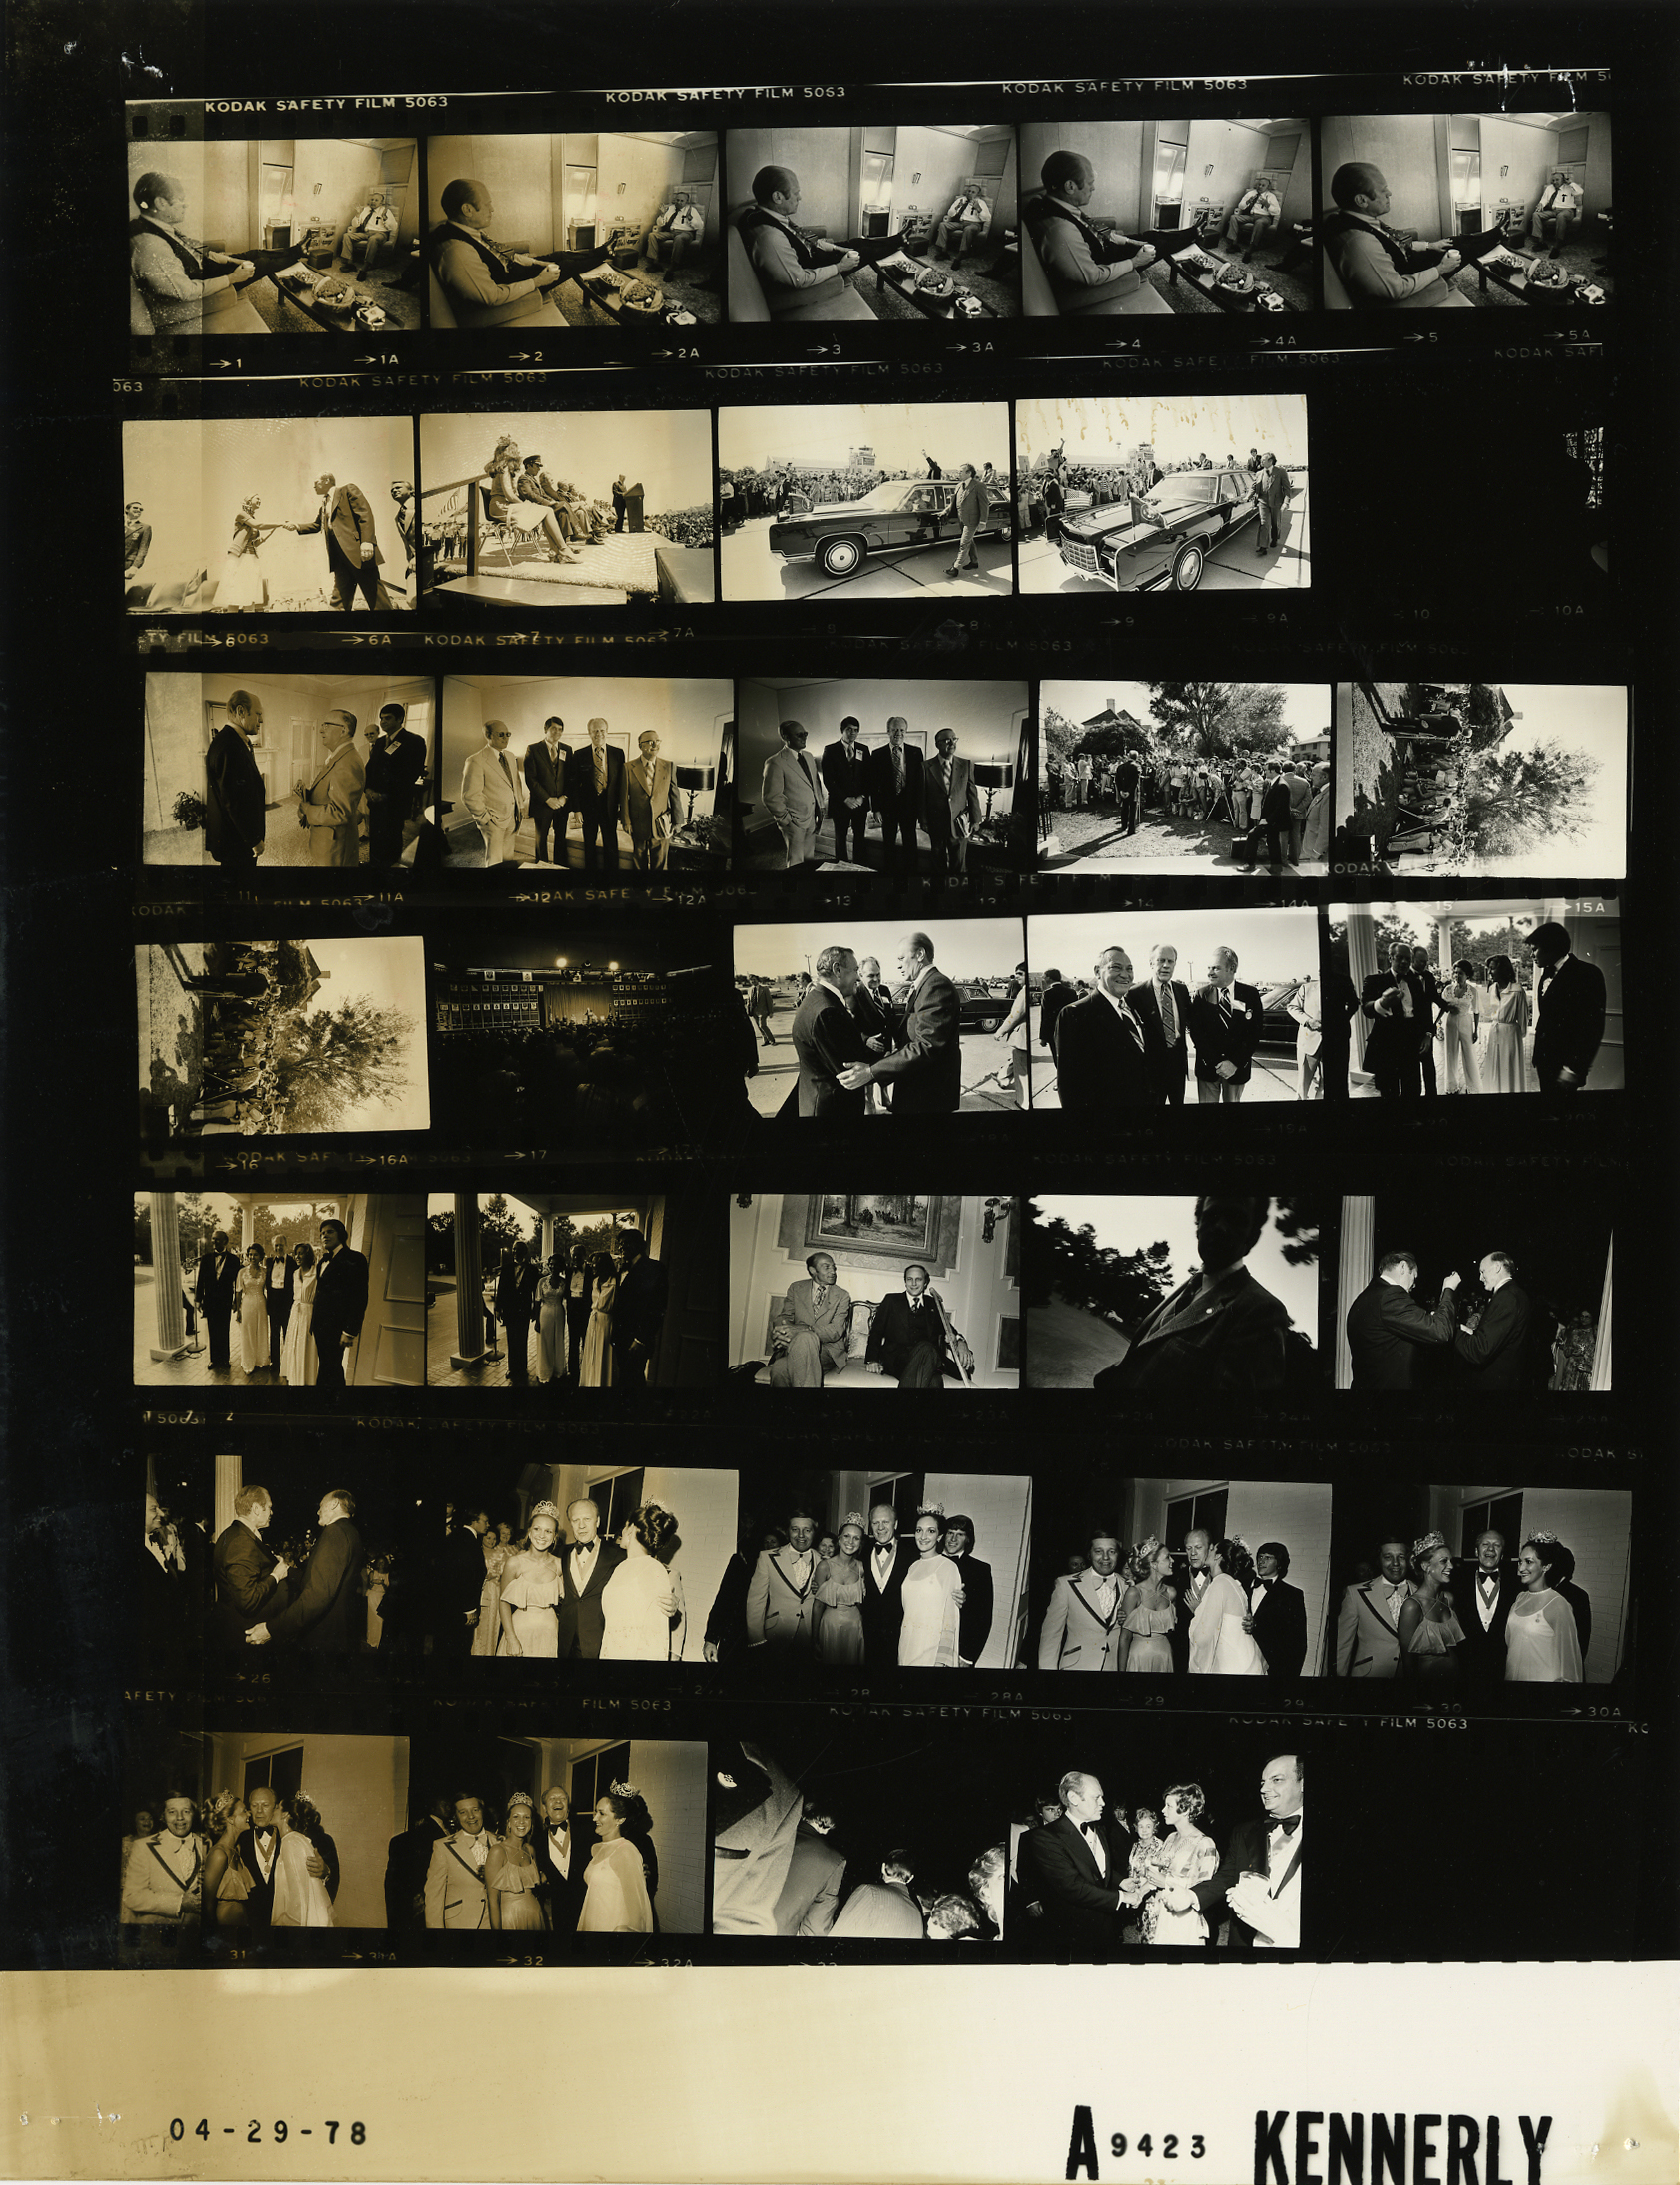 Ford A9423 NLGRF photo contact sheet (1976-04-27)(Gerald Ford Library).jpg English: The photo contact sheet, identified as A9423 by the White